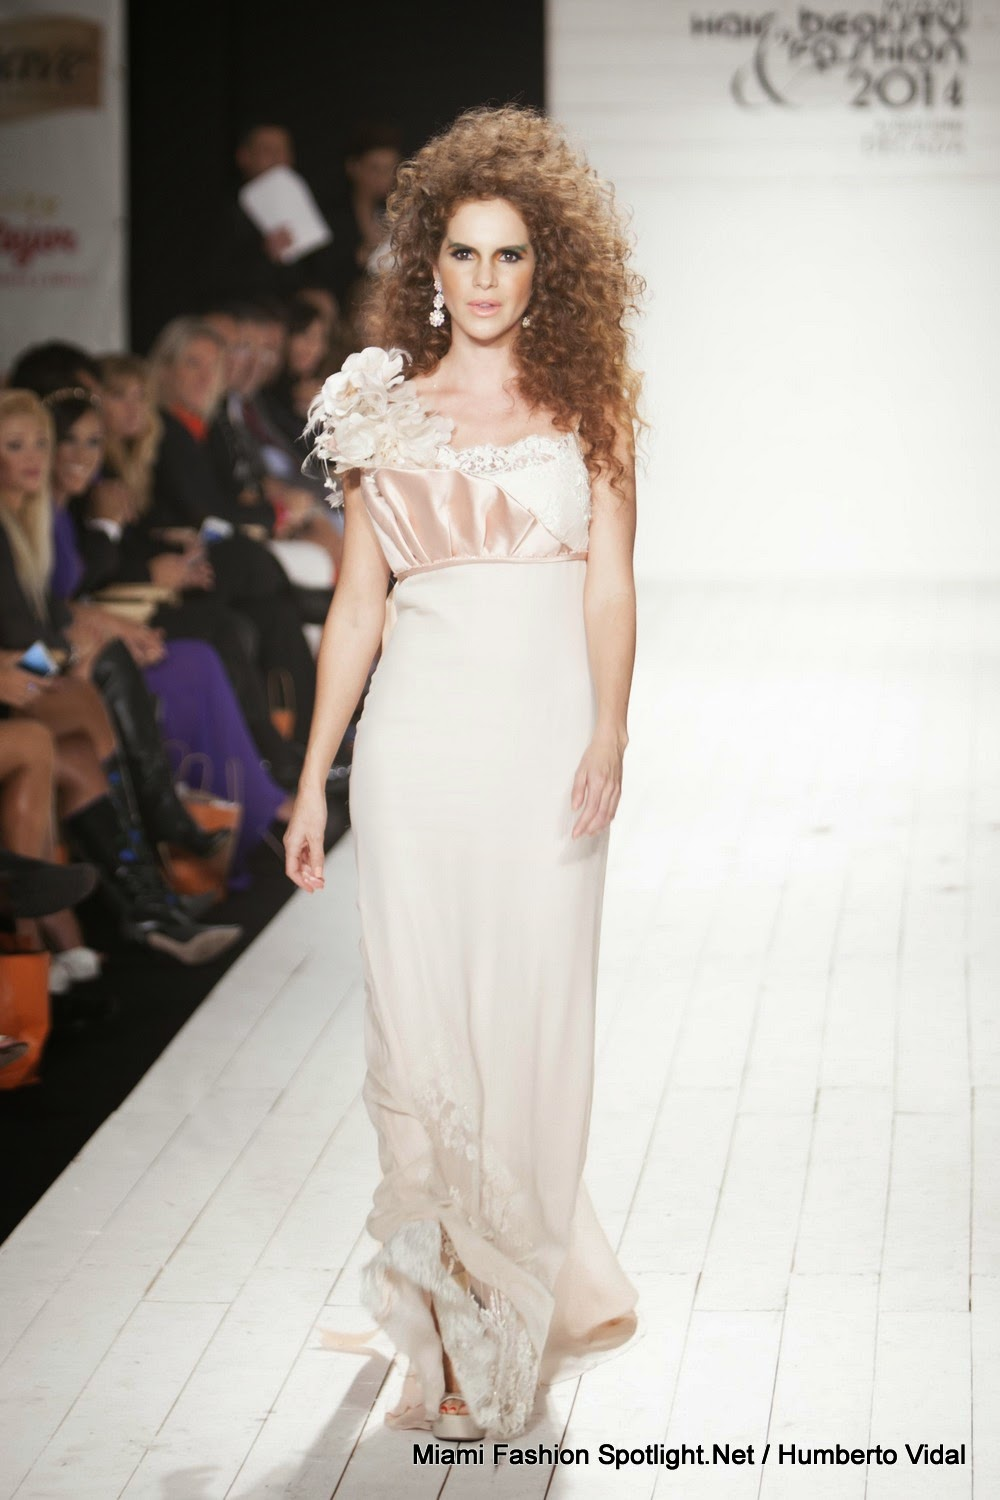 Leonardo Rocco celebrated Miami Hair, Beauty & Fashion 2014